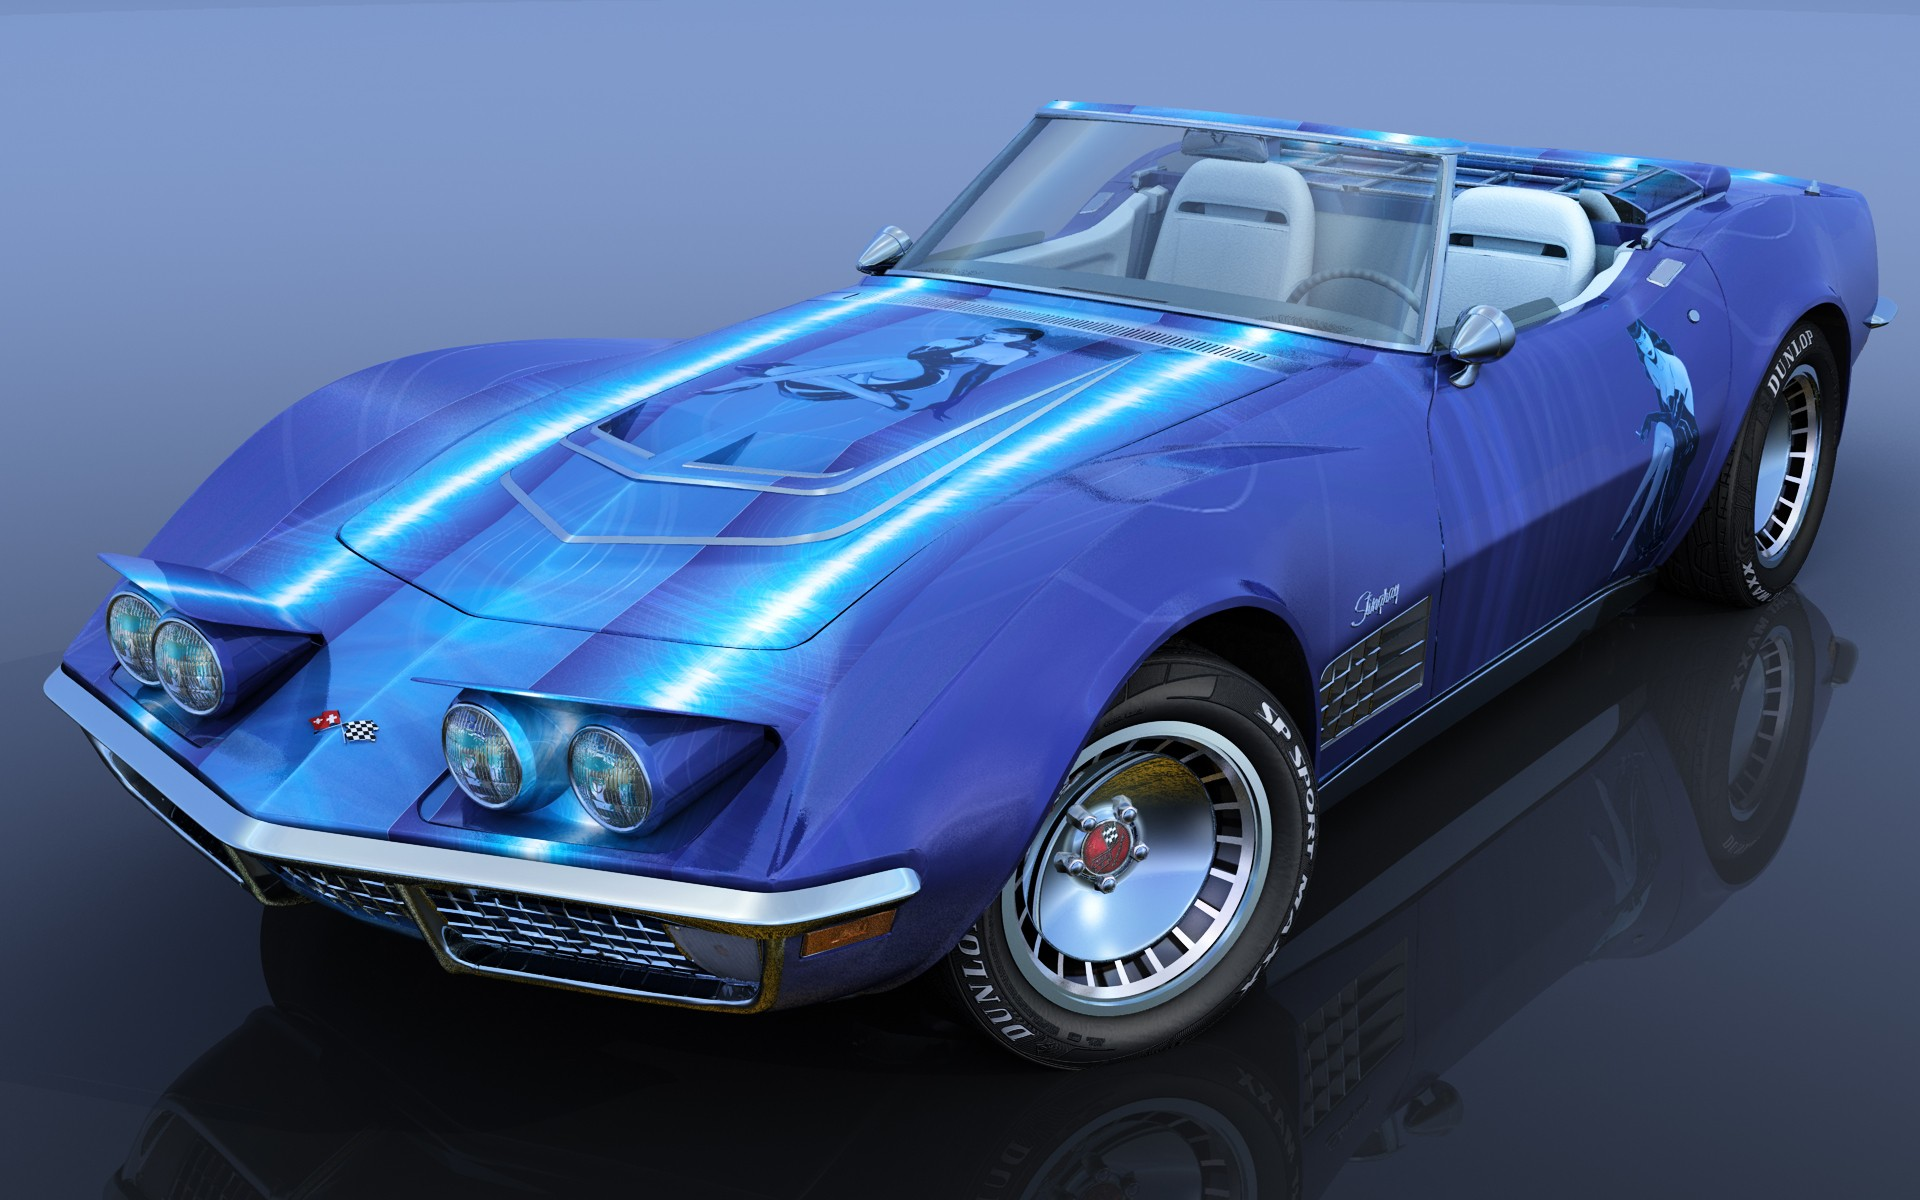 CHEVY CORVETTE LADY BLUE-2B par angelesteban